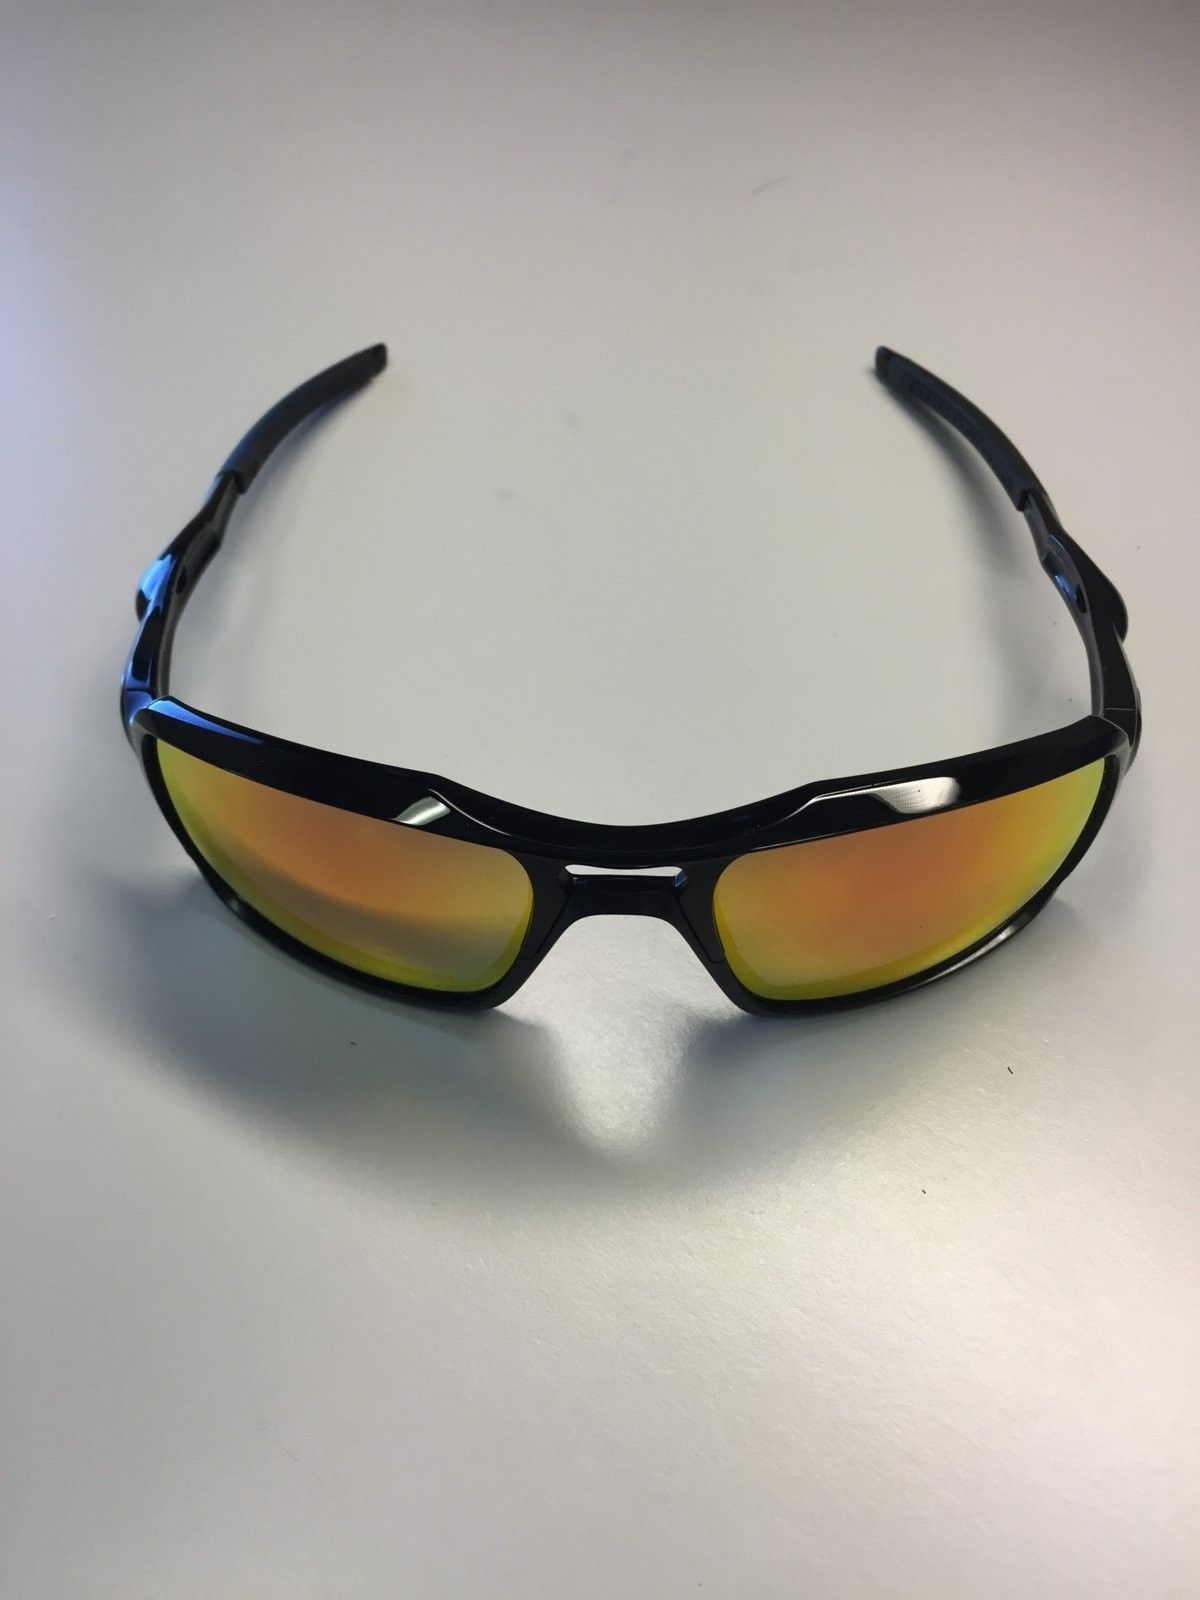 New Oakley Triggerman Ruby Iridium $125 - image.jpg